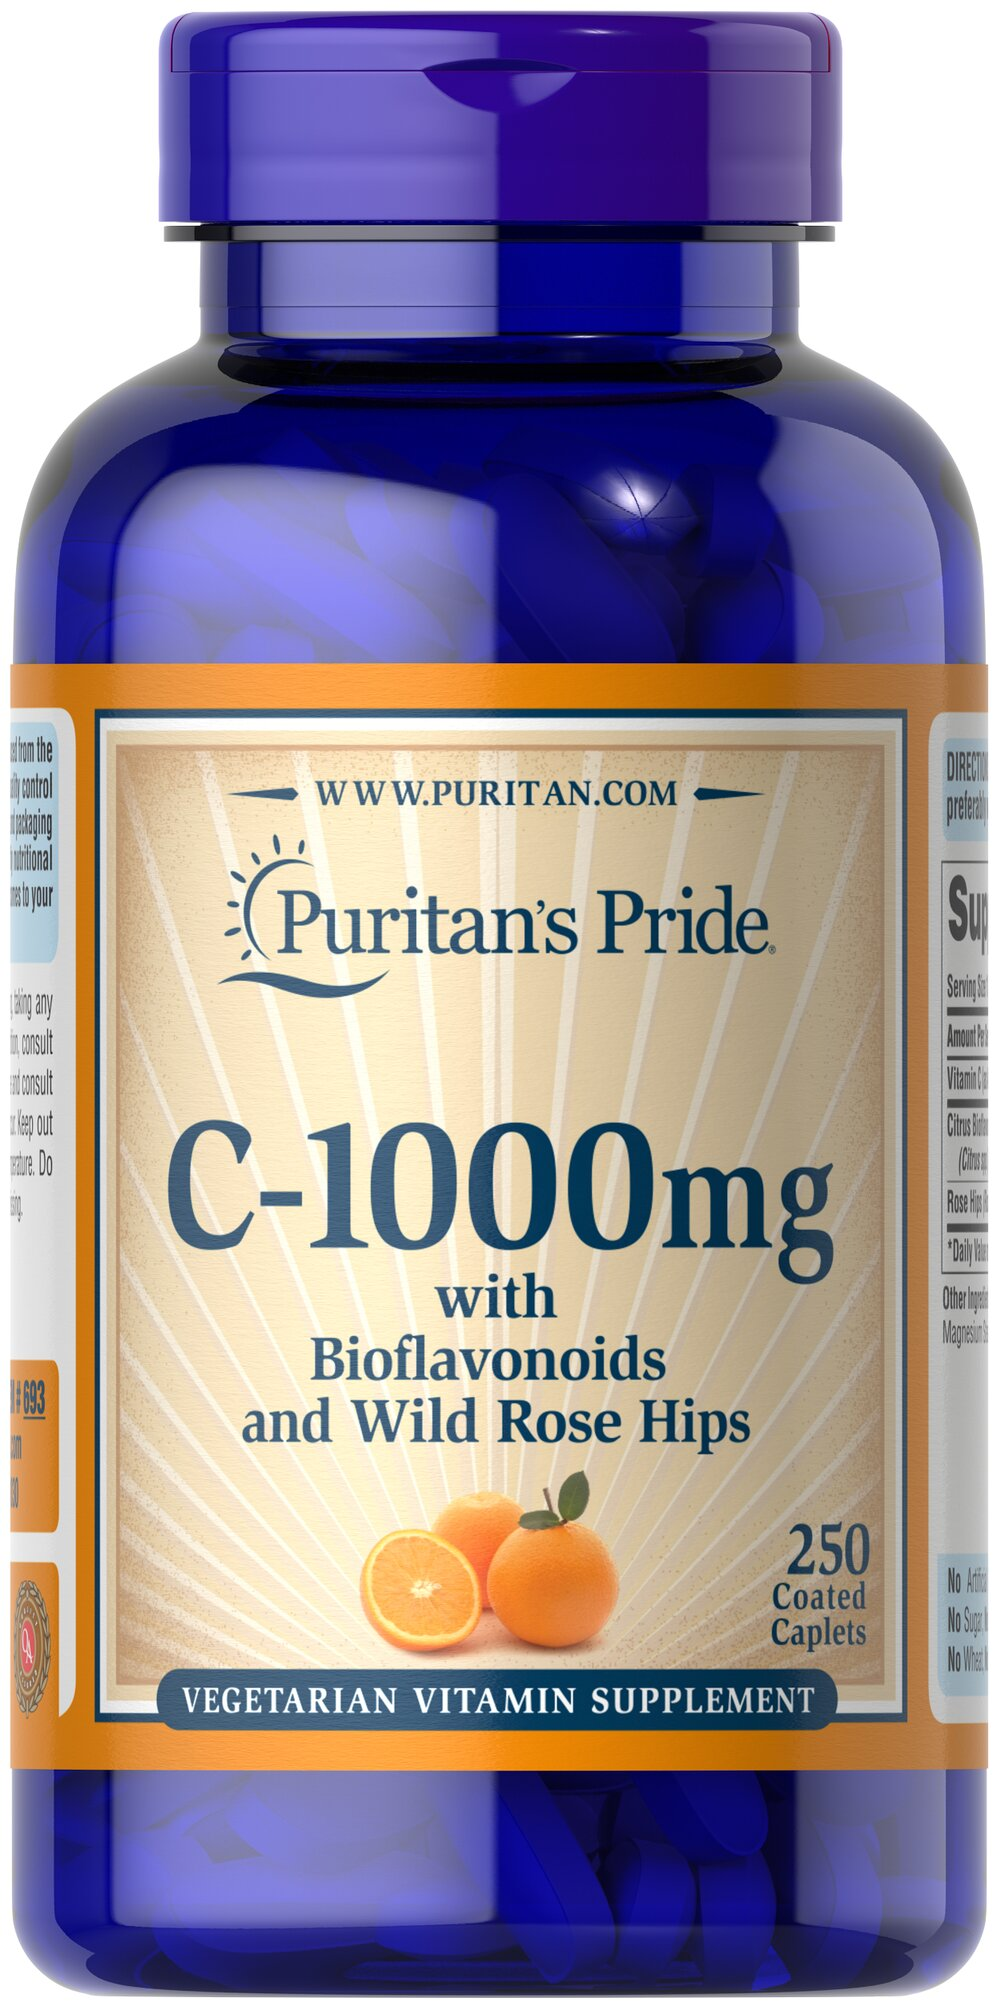 Vitamin C-1000 mg with Bioflavonoids & Rose Hips  250 Caplets 1000 mg $21.24